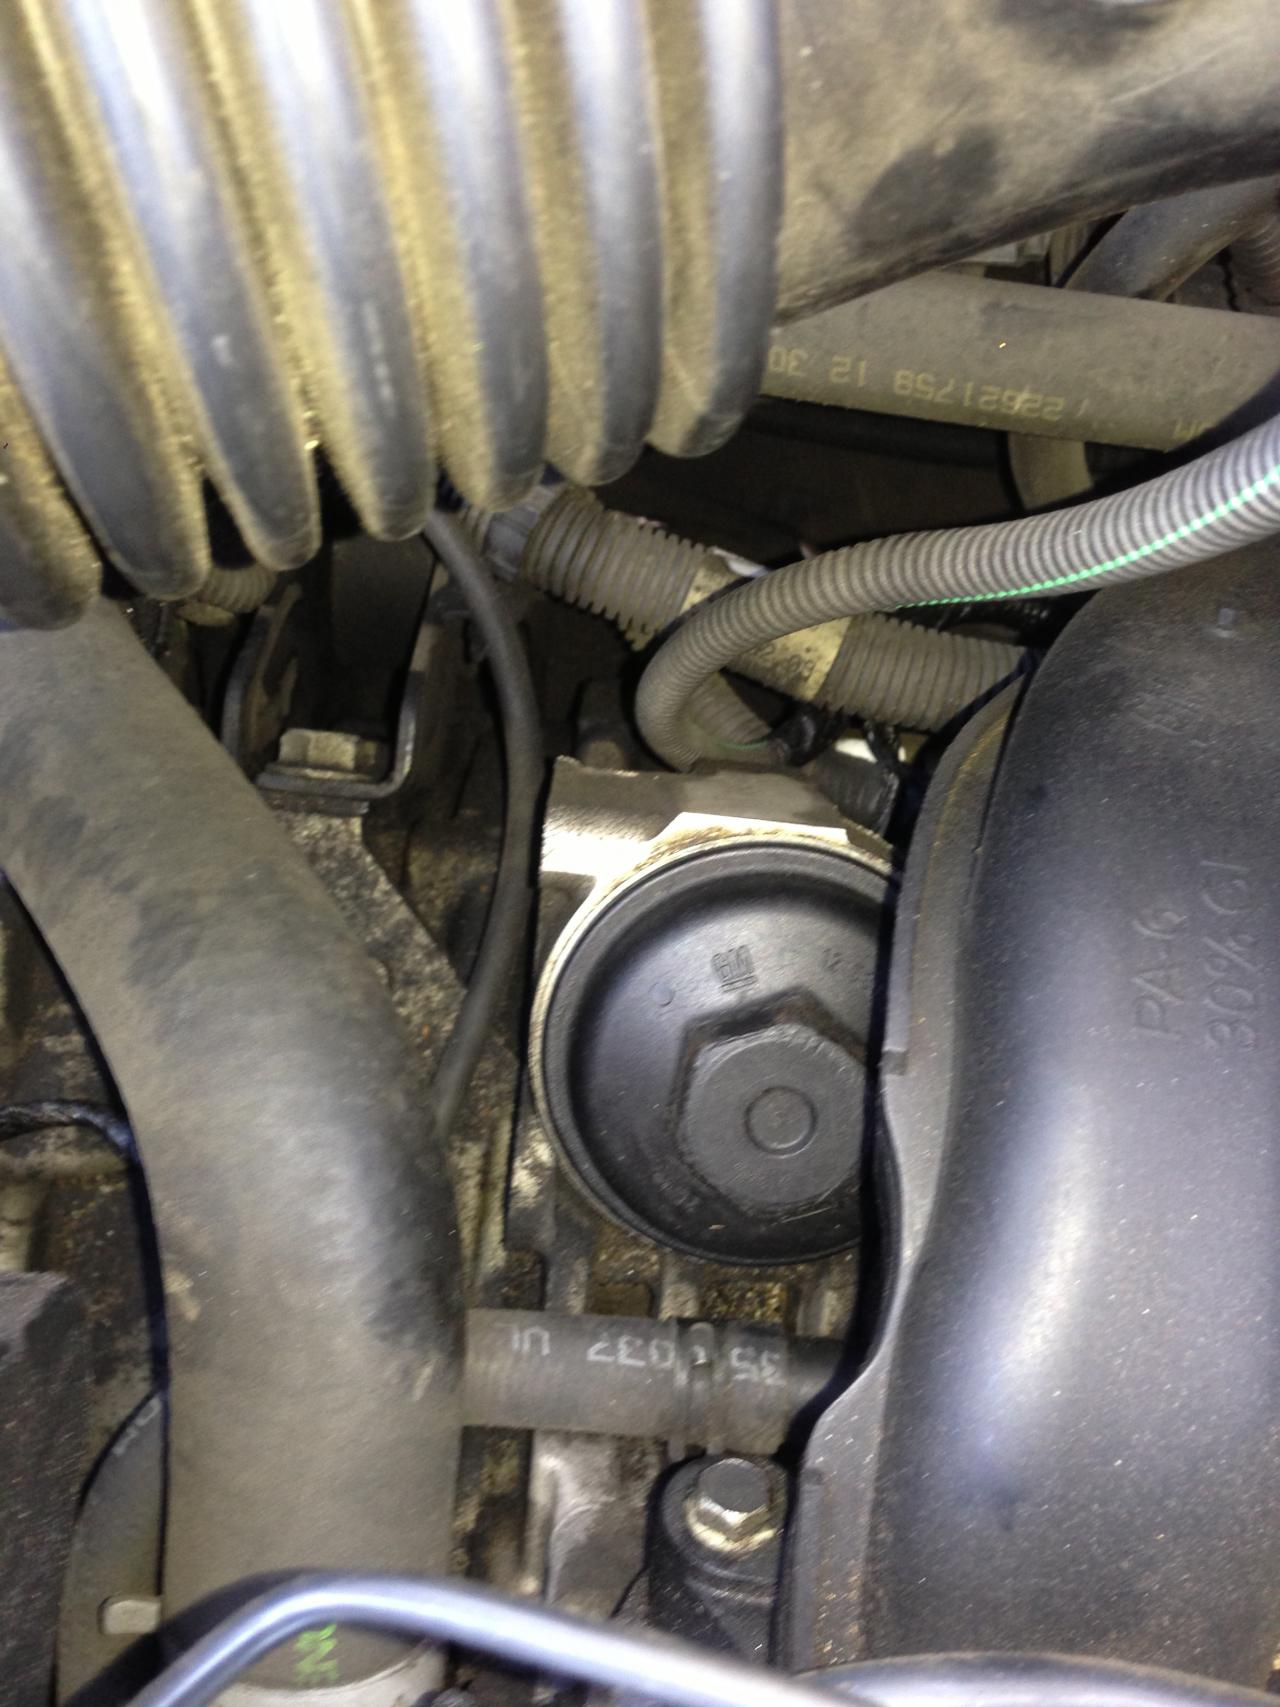 2004 Pontiac Grand Am Oil Change Engine Dispose Of Used At Local Auto Store Or Repair Shop